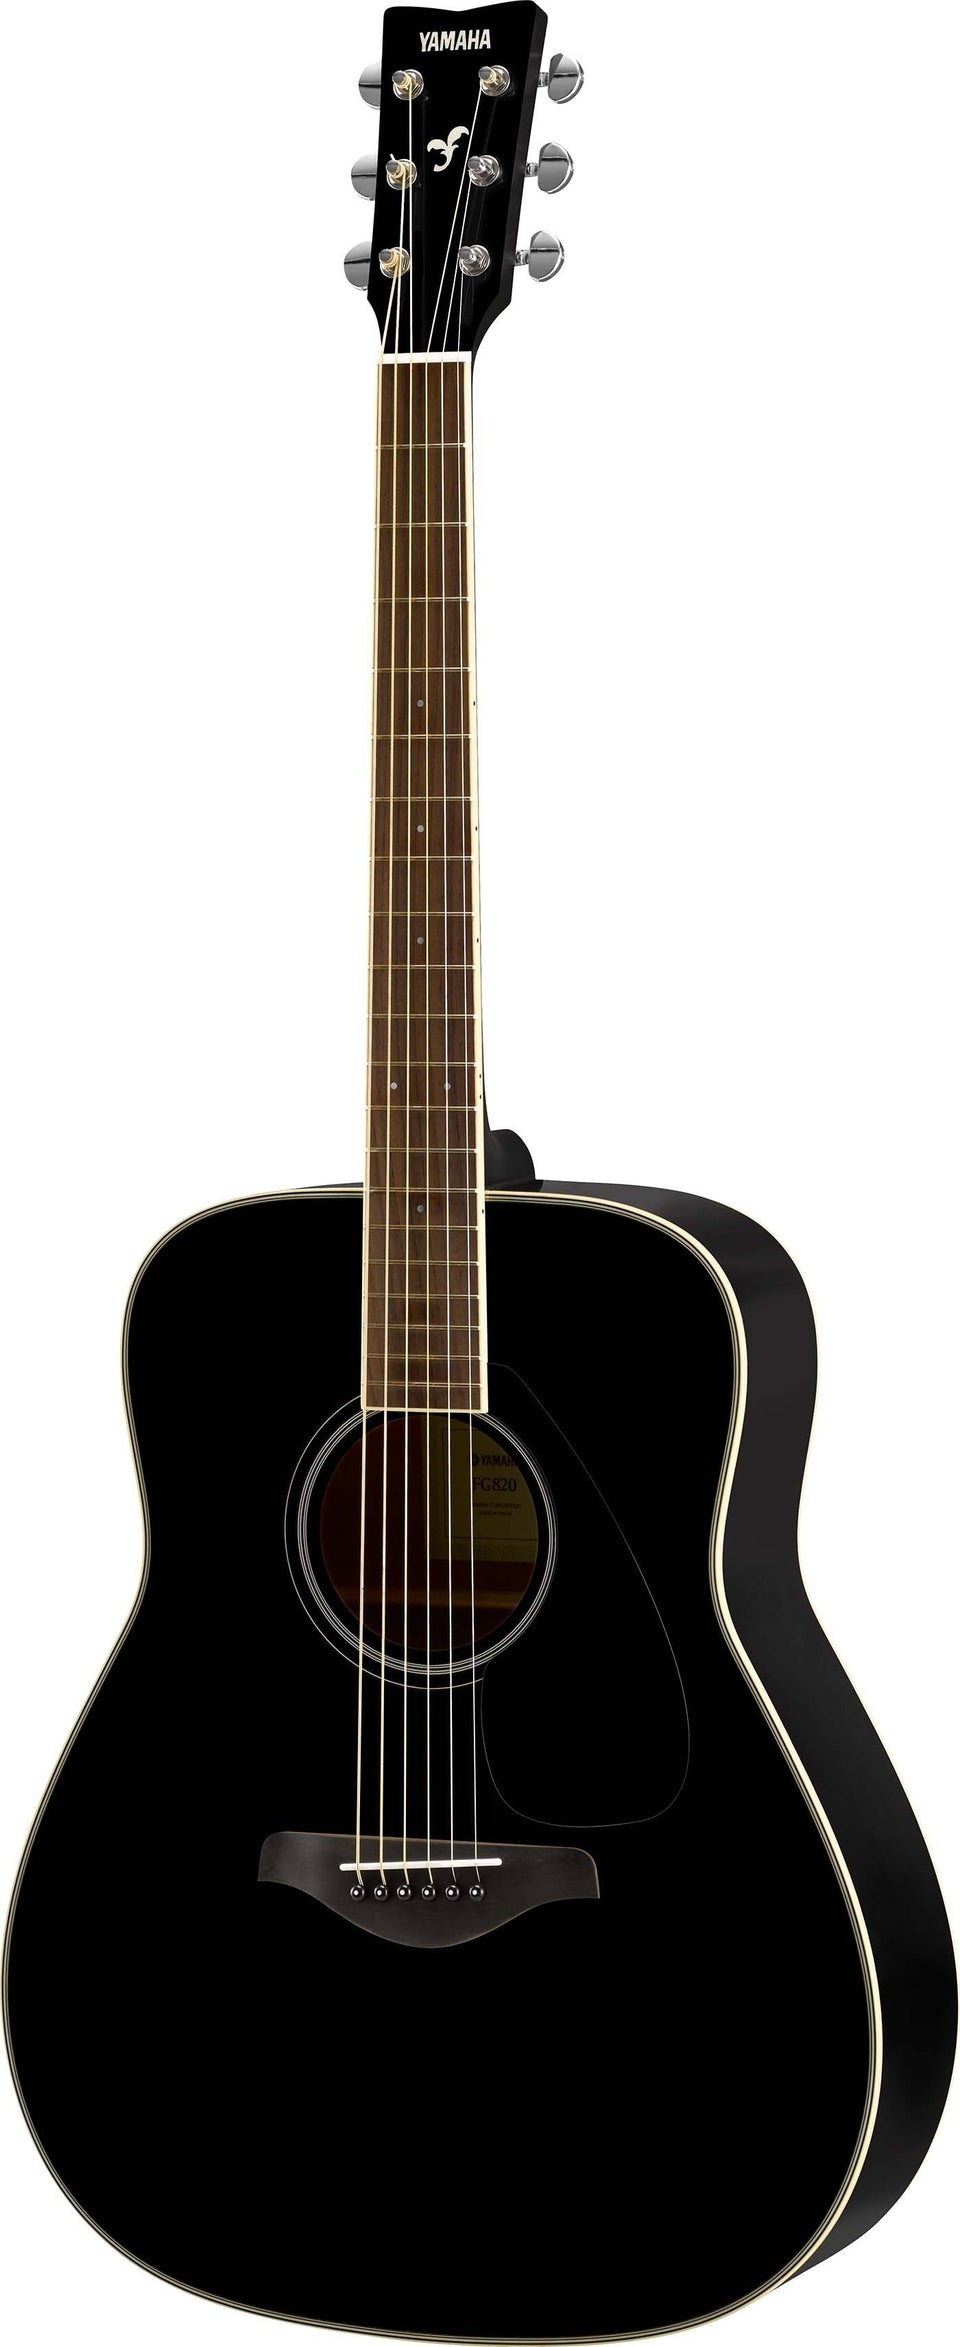 Yamaha FG820 Acoustic Guitar - Black